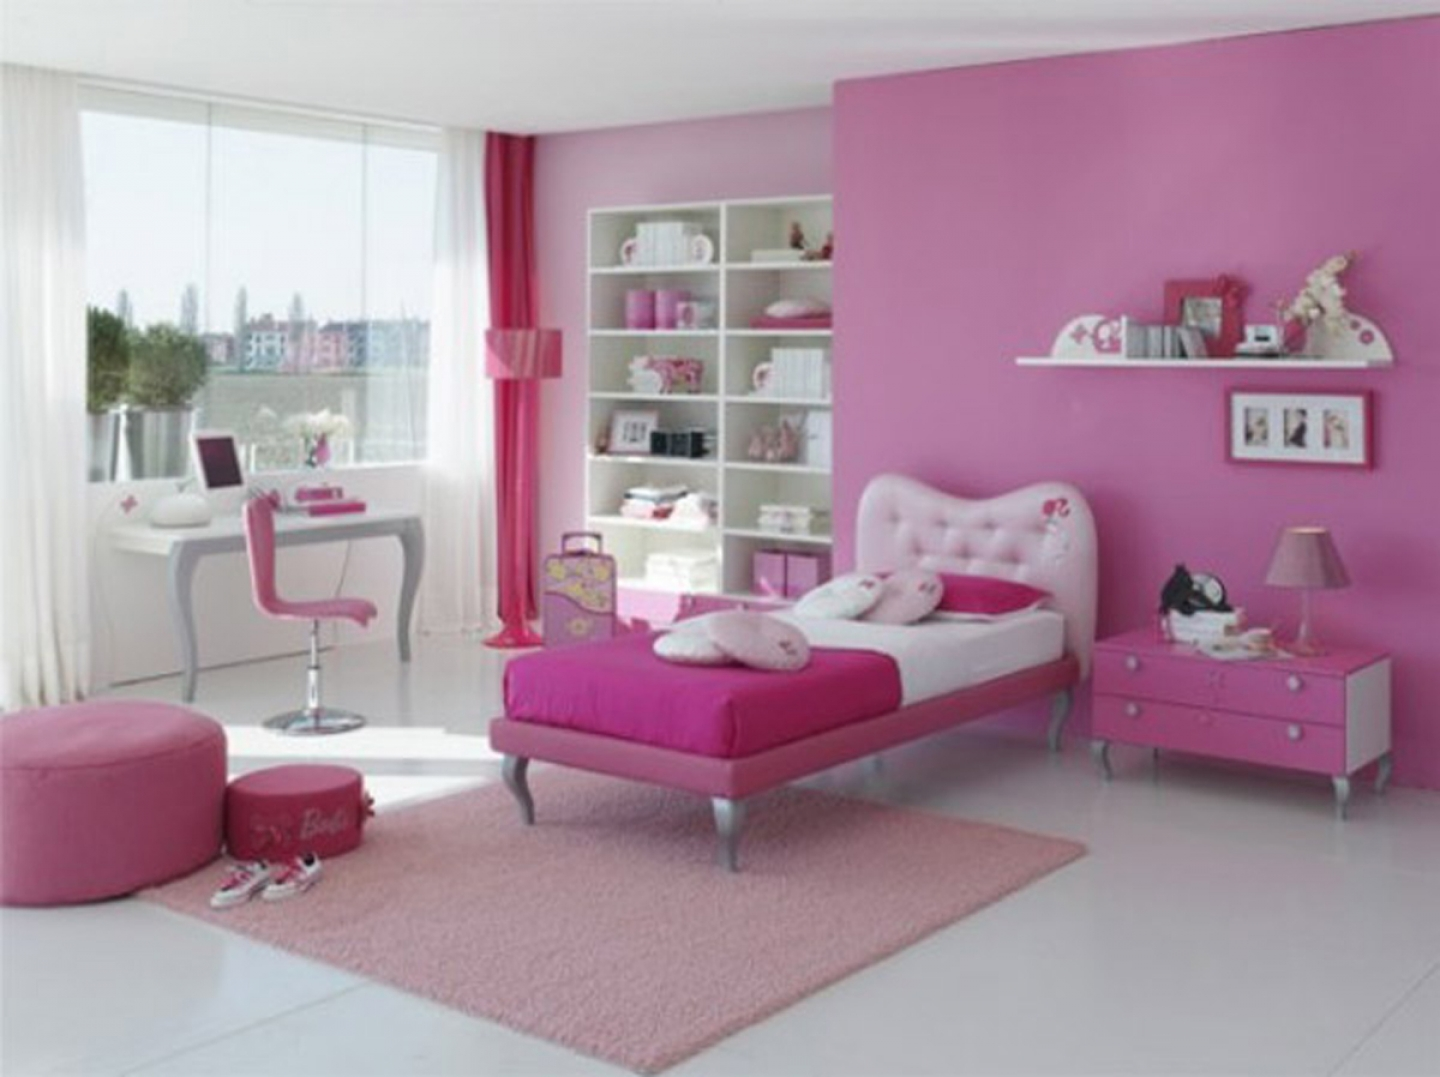 Girl bedroom ideas painting - large and beautiful photos ...